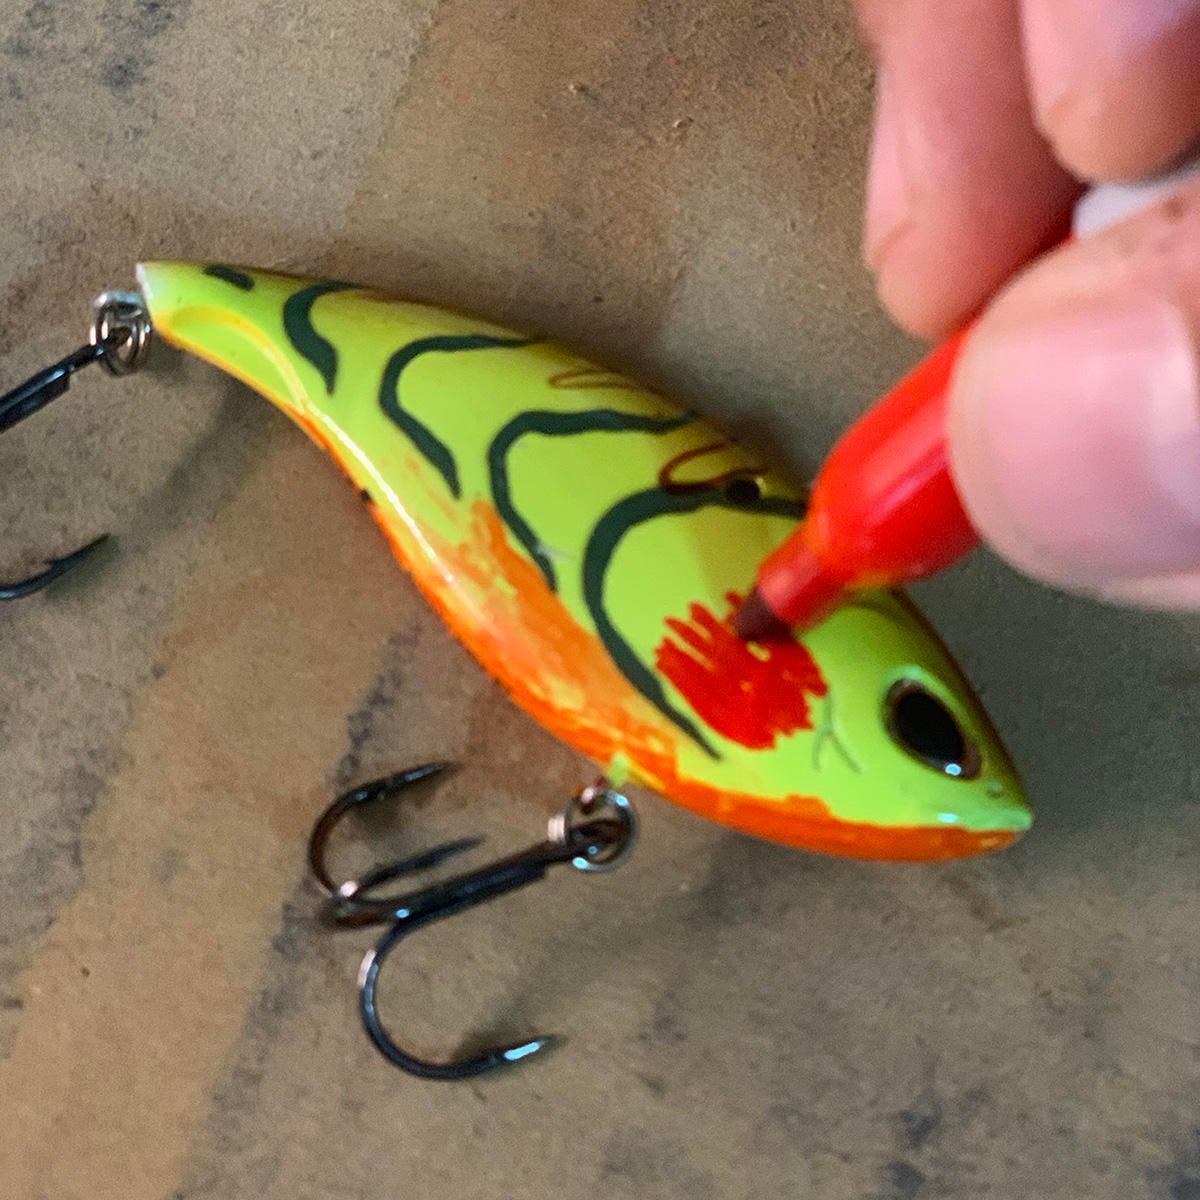 Change Fishing Lure Colors on the Fly - Wired2Fish com